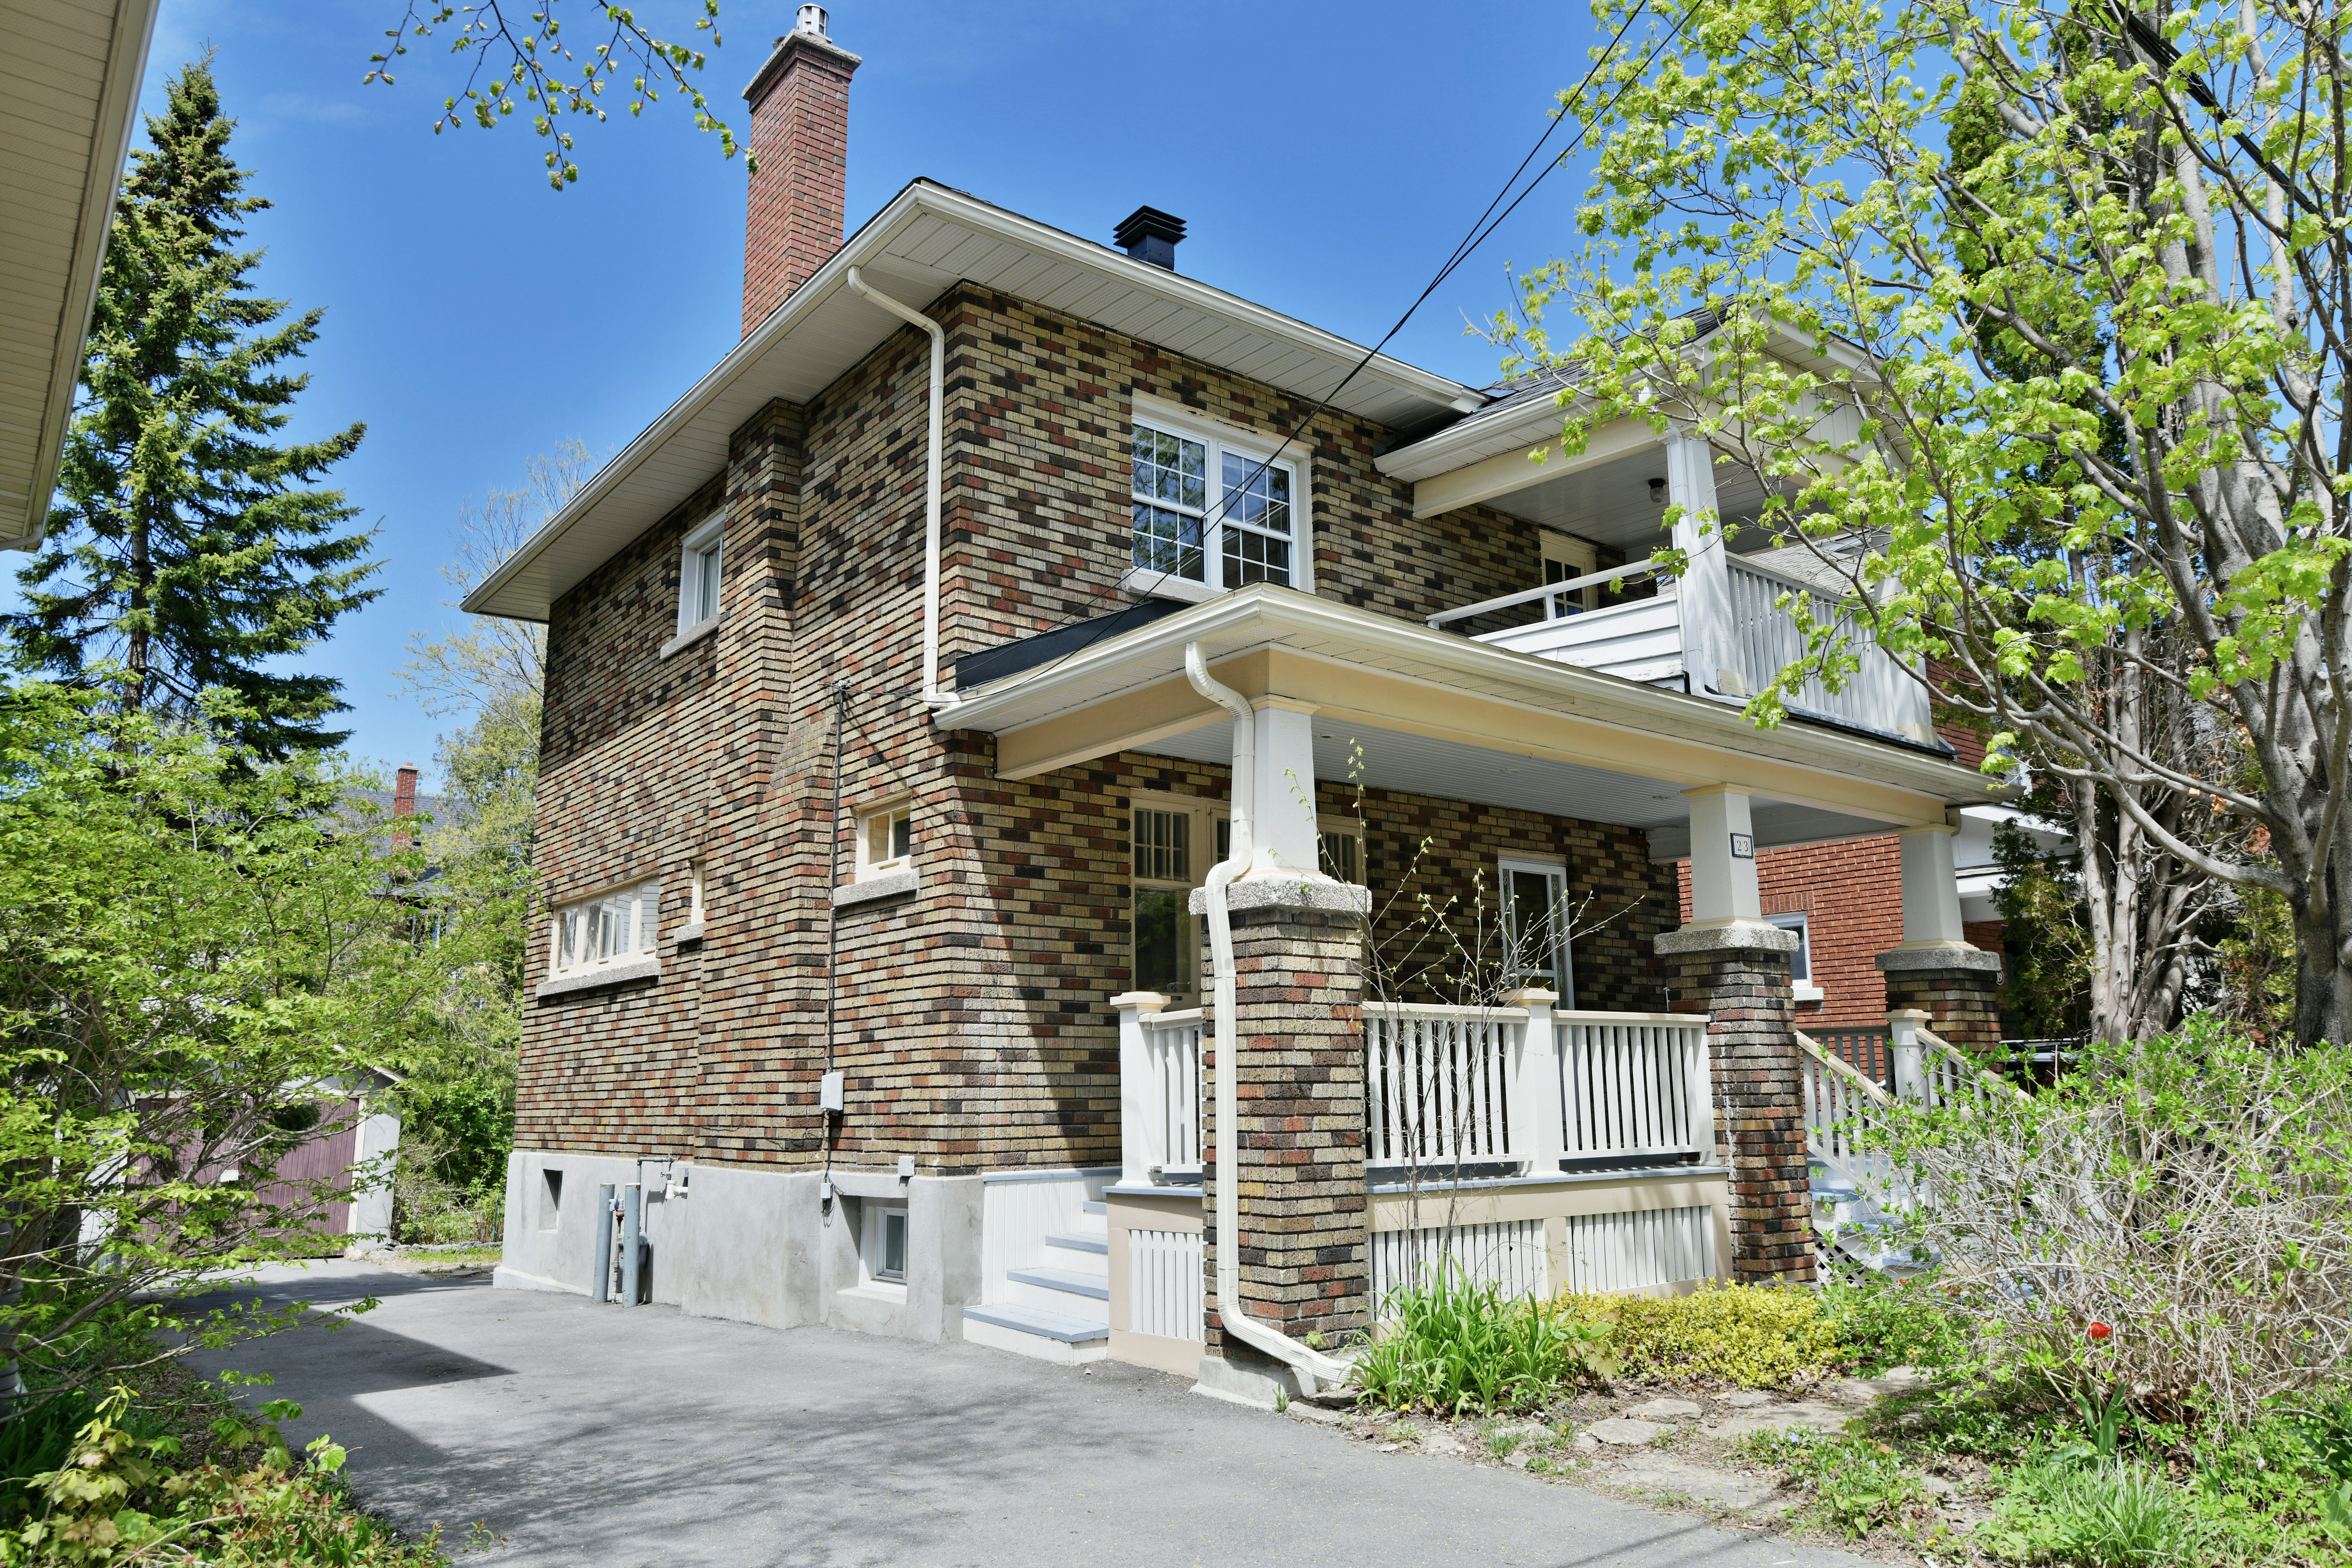 23 Grove Avenue – Sold May 2020